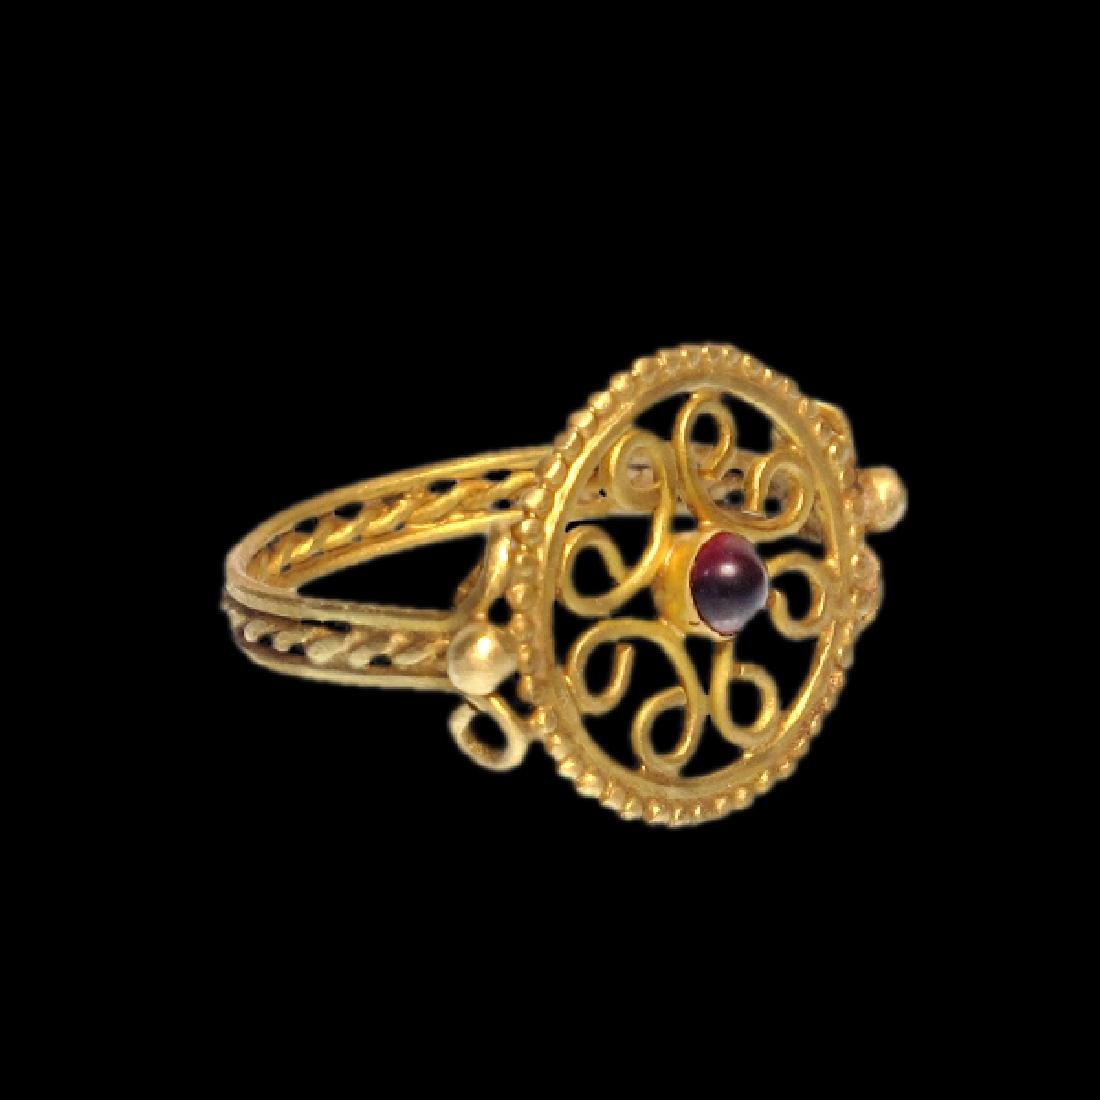 Byzantine Gold Open-Work Ring, 11th-12th Century A.D.